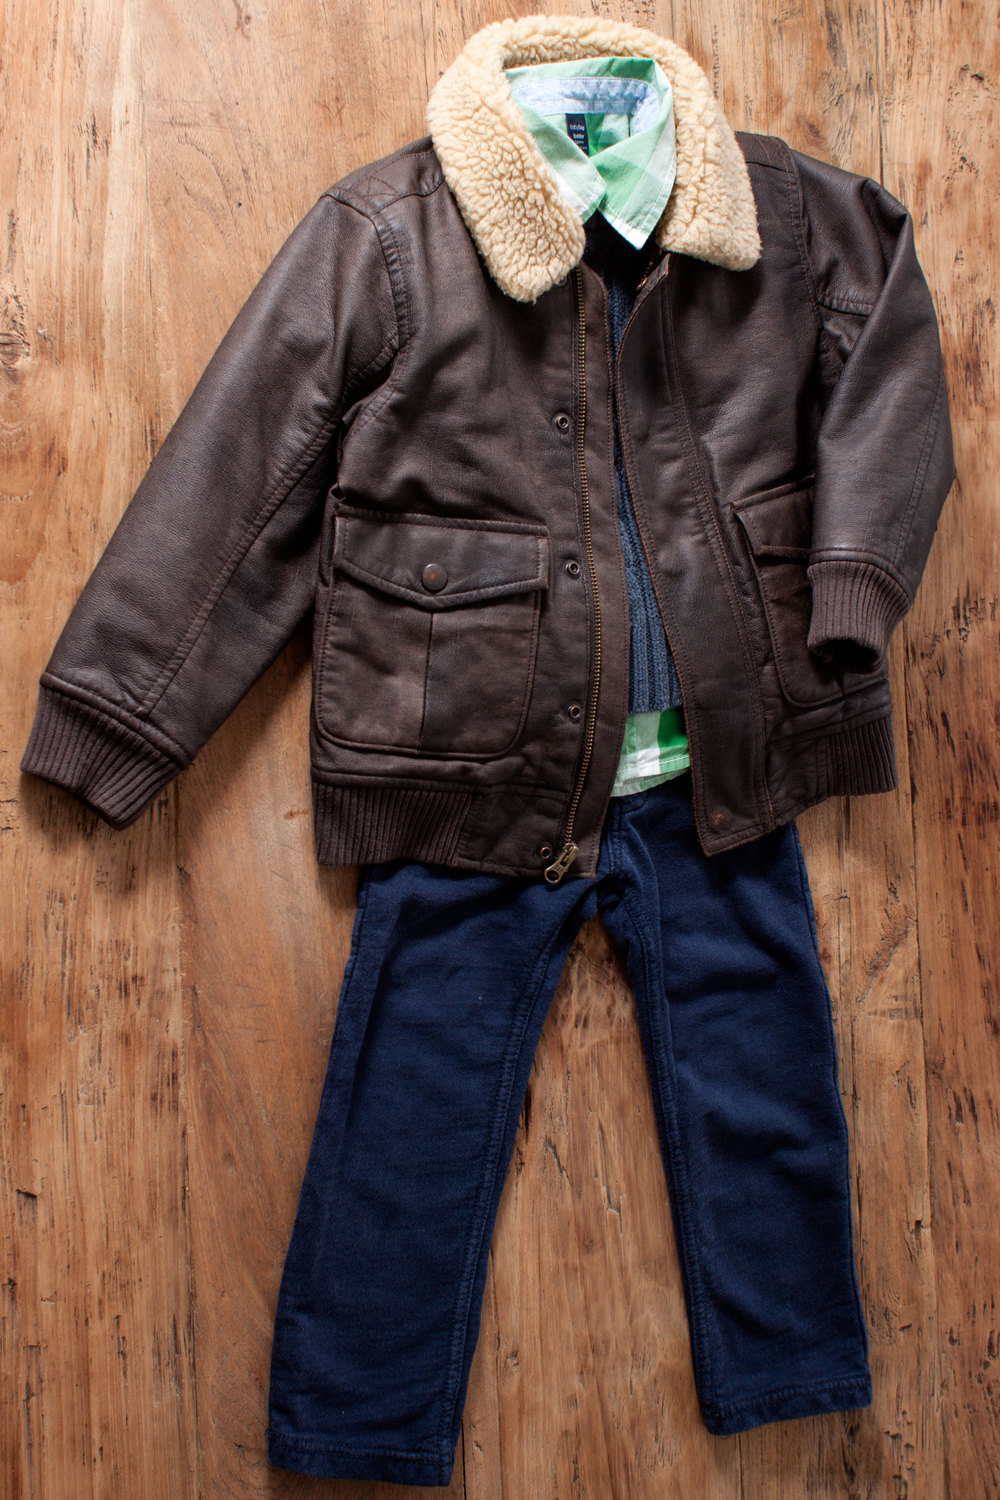 Image includes Boys Gap bomber jacket. Size: 5 Years. On Sale. $12.50.